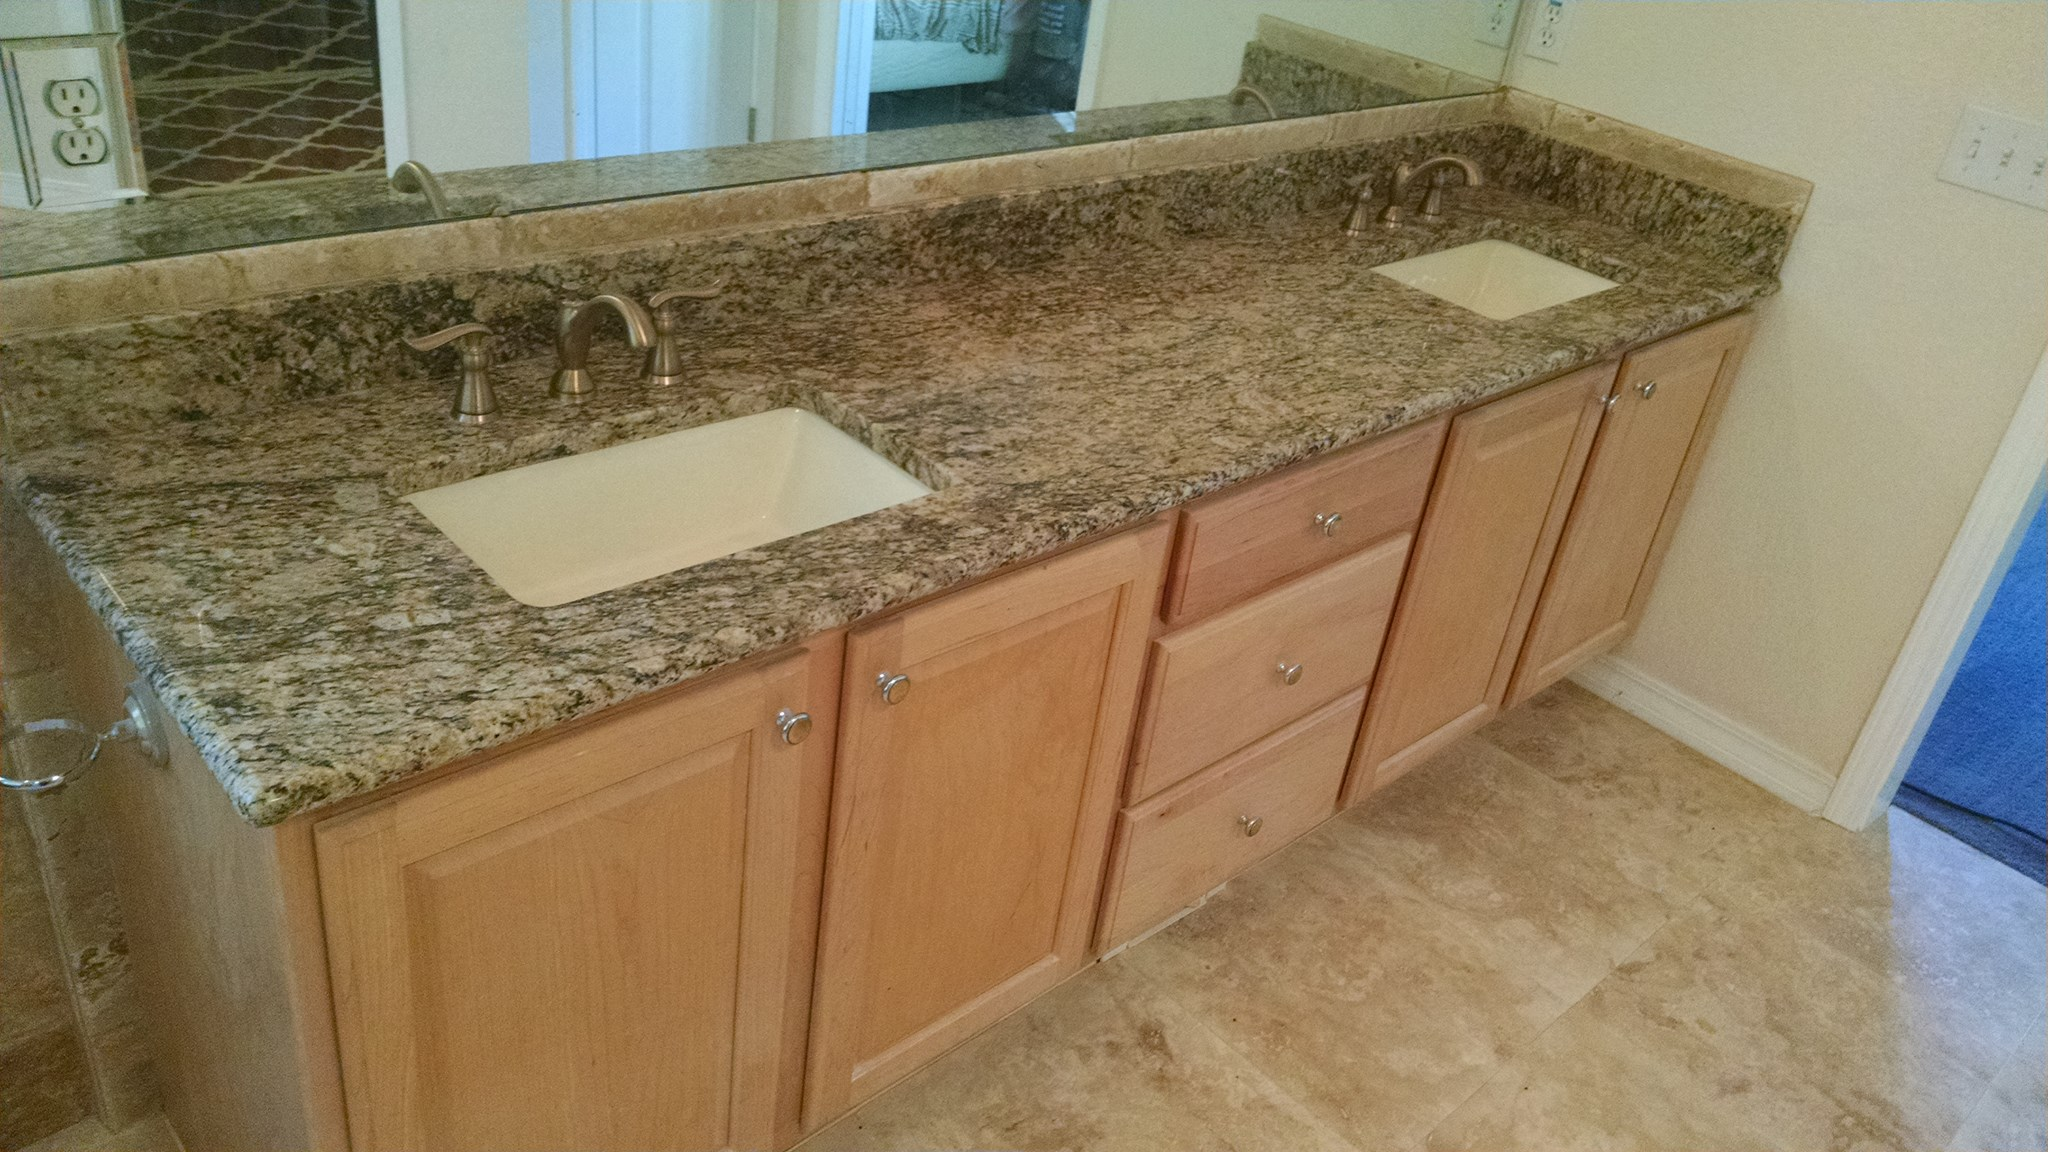 View The Pictures Of Bathroom Remodeling Projects Done By 21st Century Marble Granite Inc In Pensacola Fl